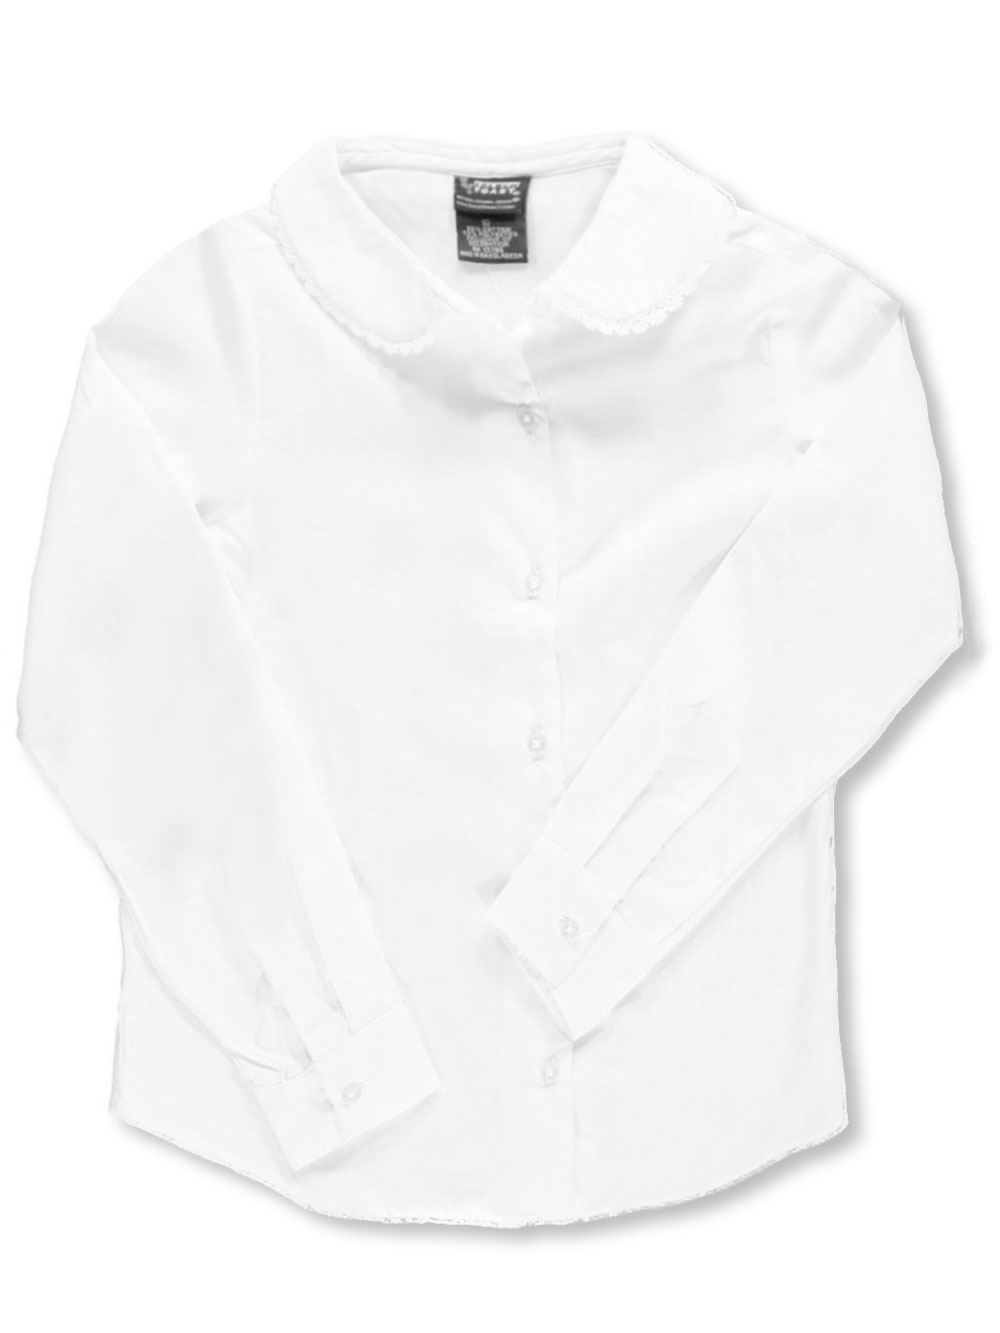 Image of French Toast School Uniform LS Blouse with Picot Edging Sizes 7  20  white 8